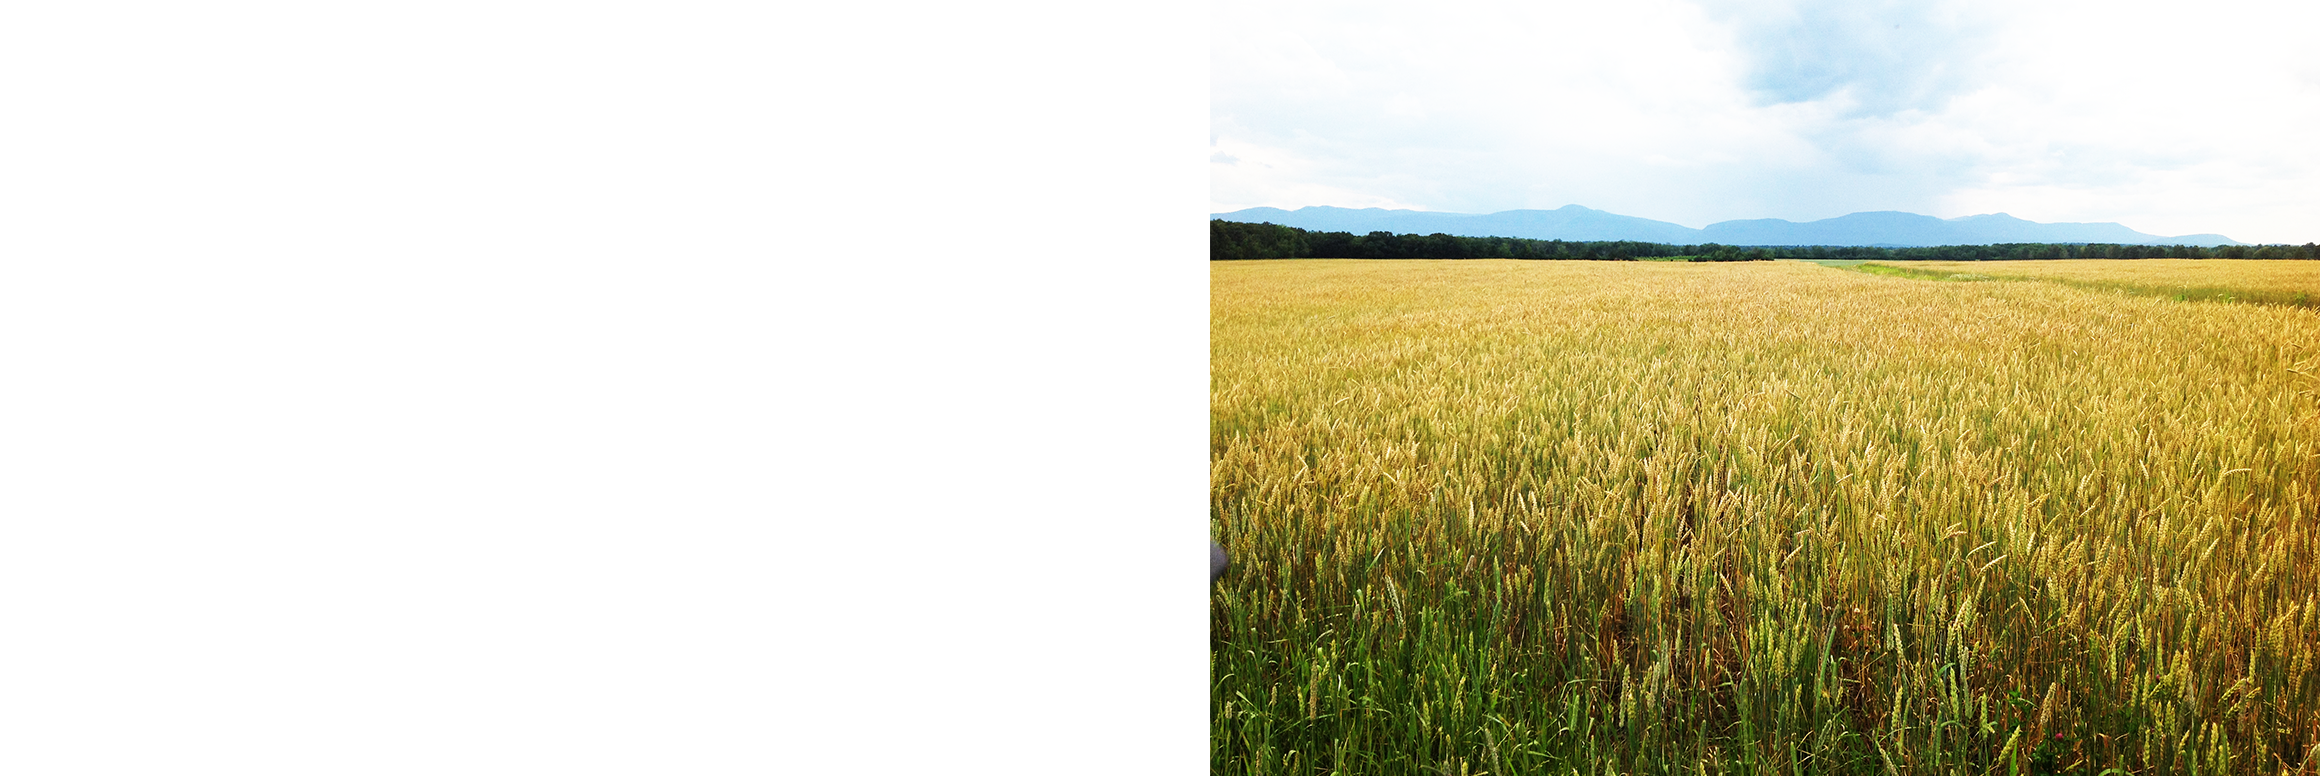 Grain png crc stone. Land clipart wheat field